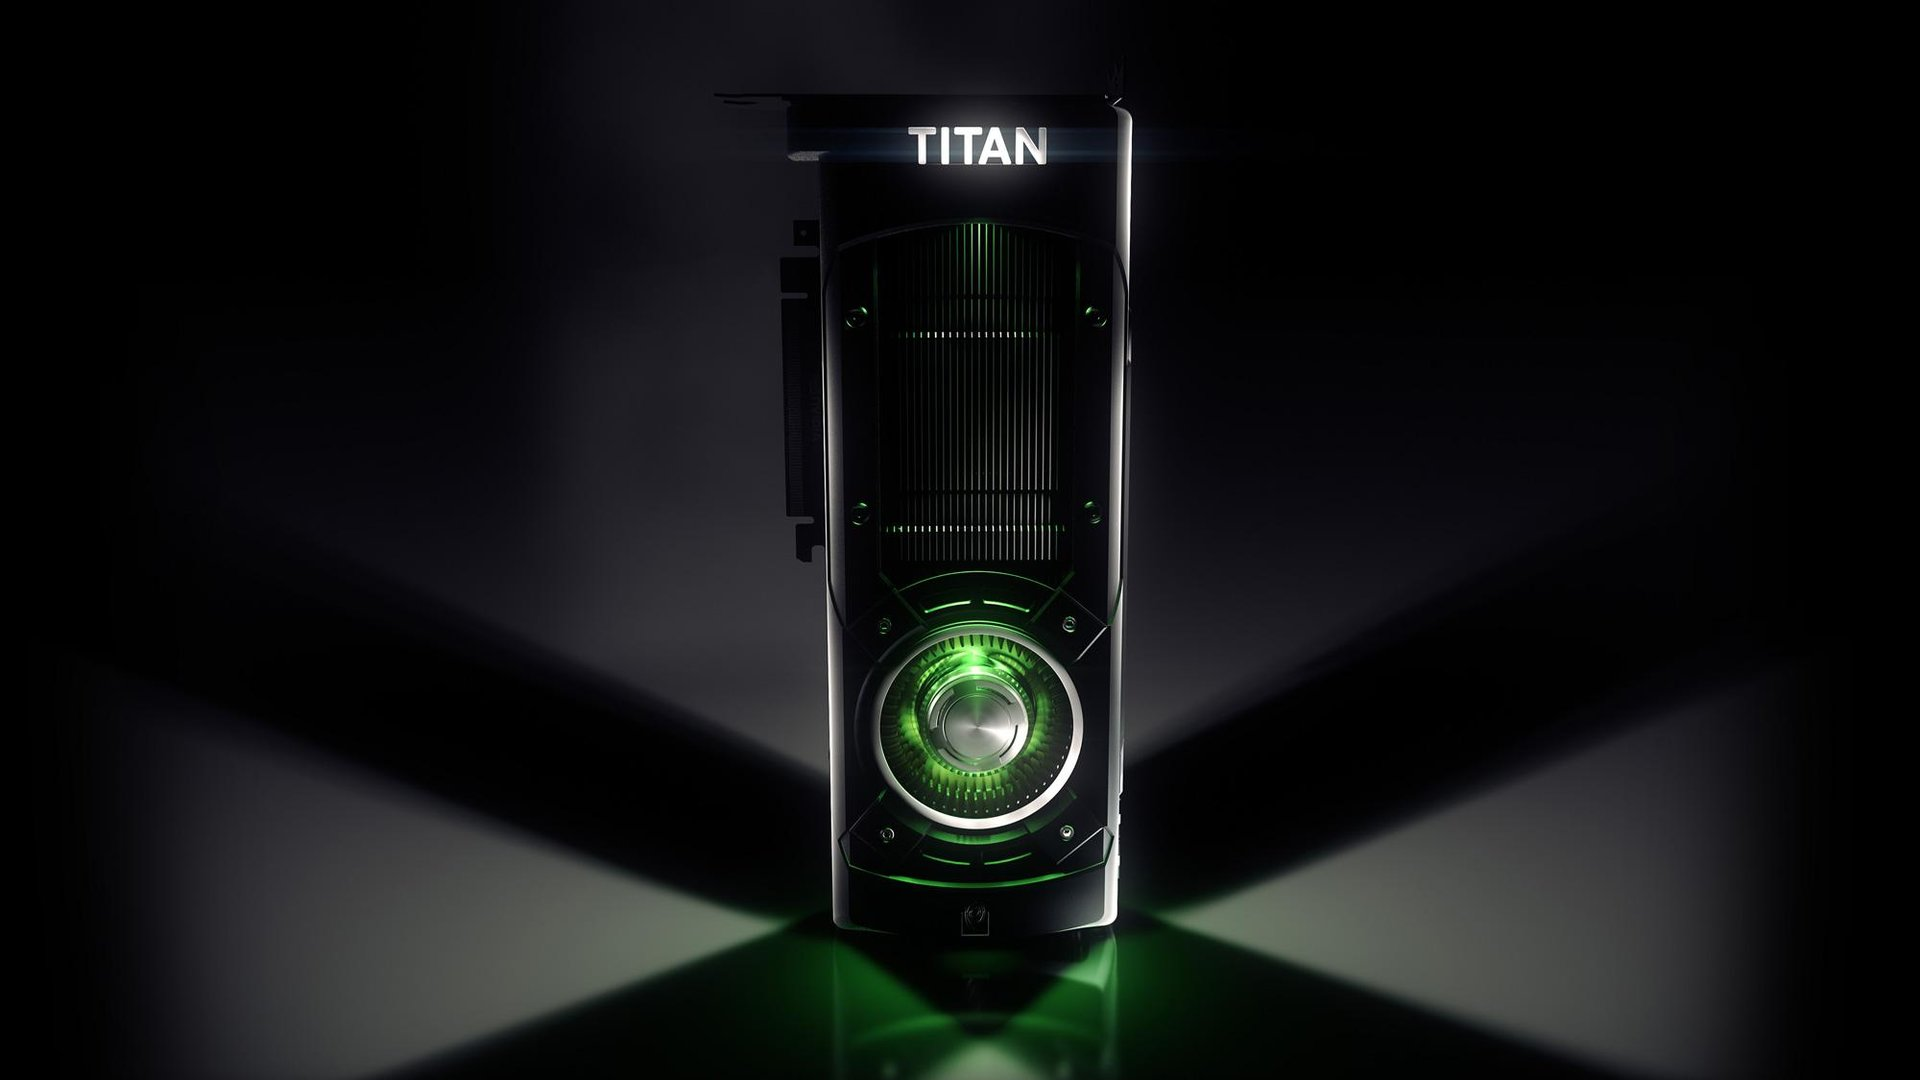 Nvidia shows off the TITAN X at GDC